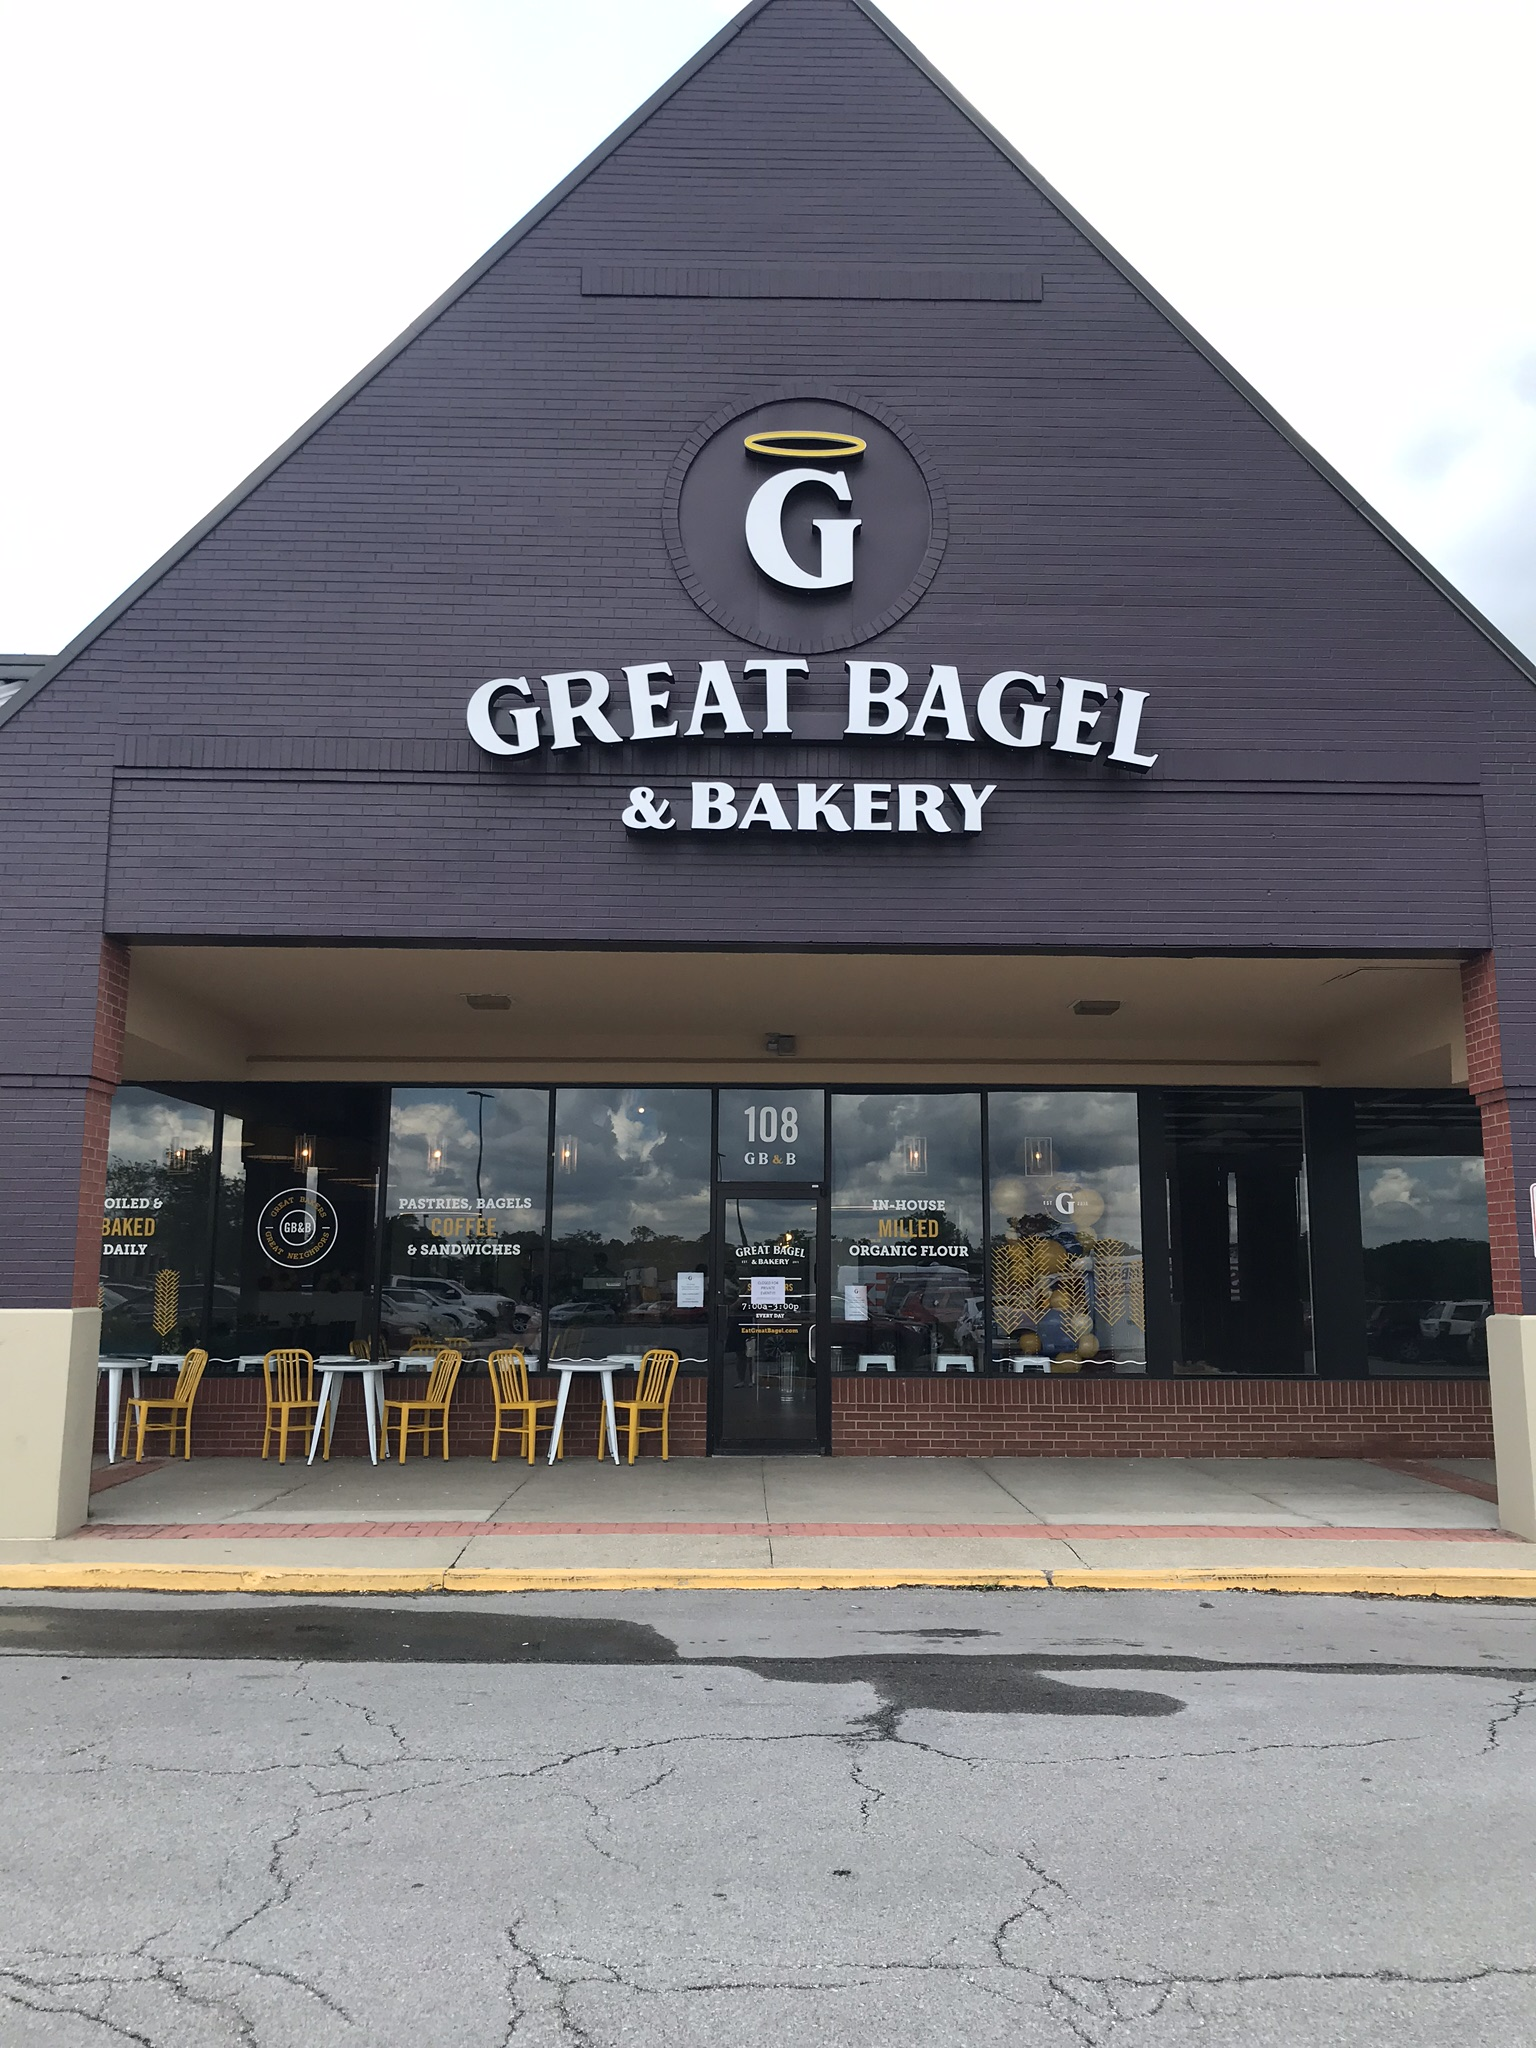 the outside of Great Bagel in Lexington, Kentucky